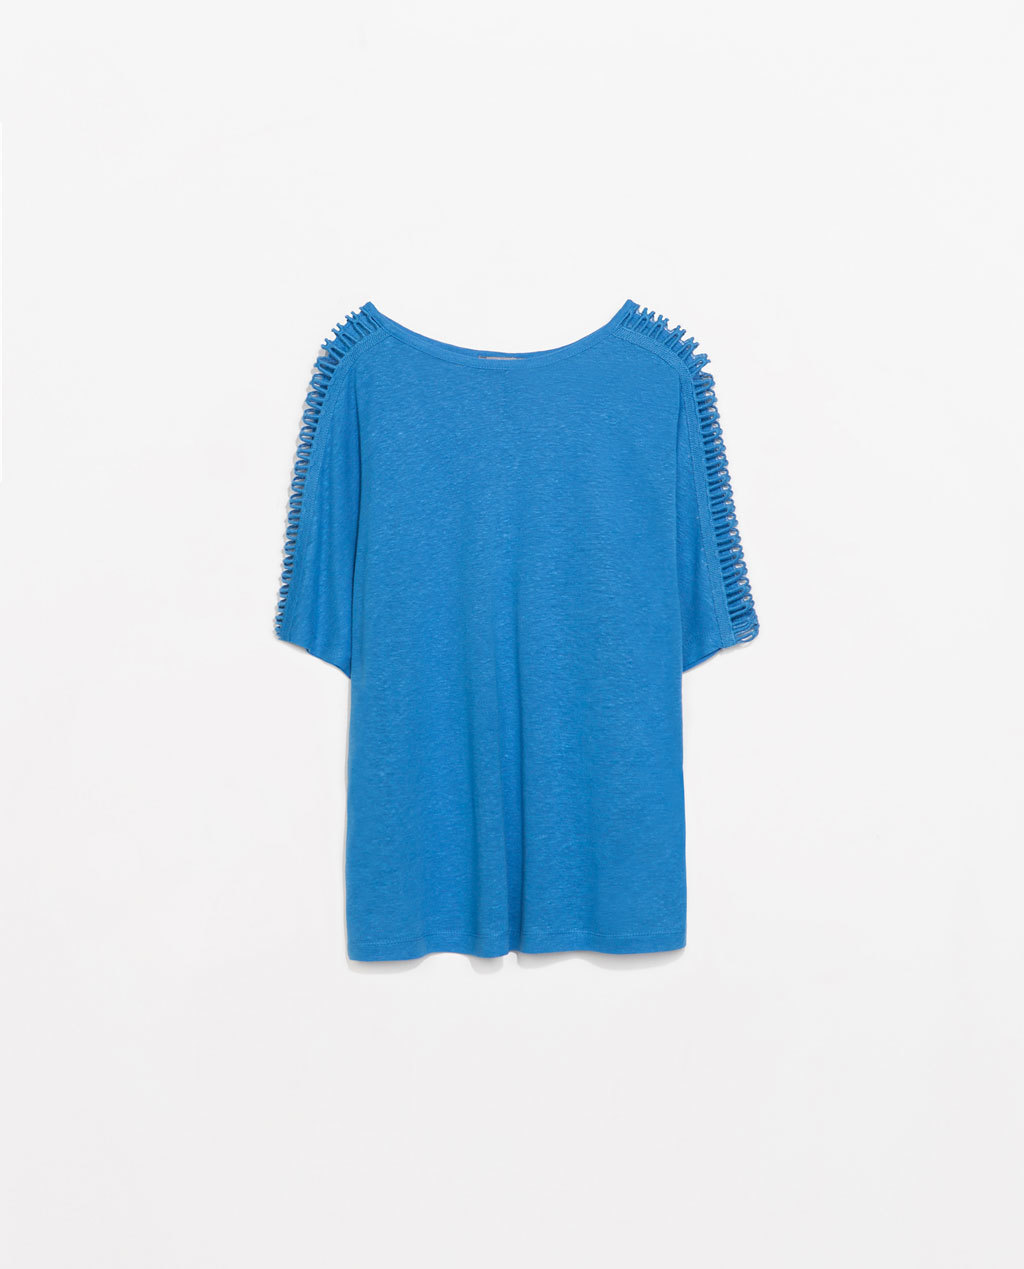 T Shirt With Lace On Shoulder - neckline: round neck; pattern: plain; shoulder detail: contrast pattern/fabric at shoulder; predominant colour: diva blue; occasions: casual; length: standard; style: top; fibres: linen - mix; fit: loose; sleeve length: half sleeve; sleeve style: standard; pattern type: fabric; texture group: jersey - stretchy/drapey; season: s/s 2014